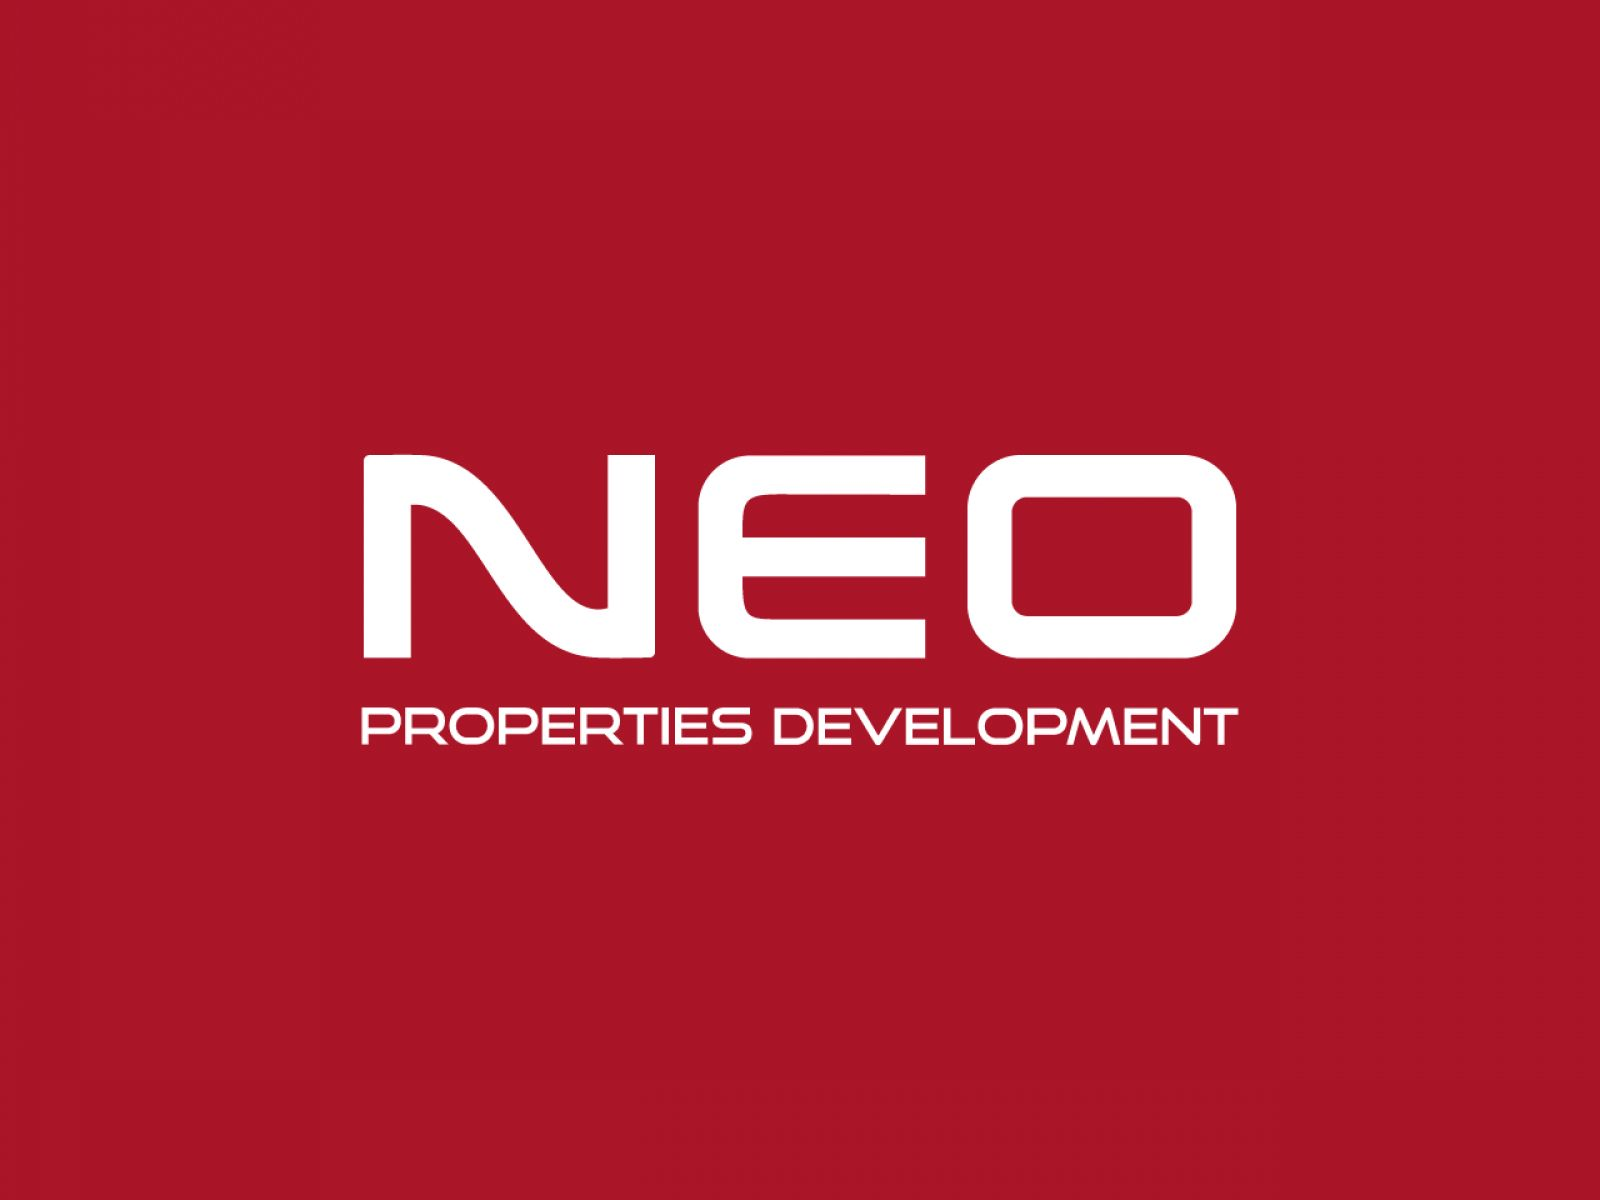 One United Properties S.A. develops a new residential division – Neo